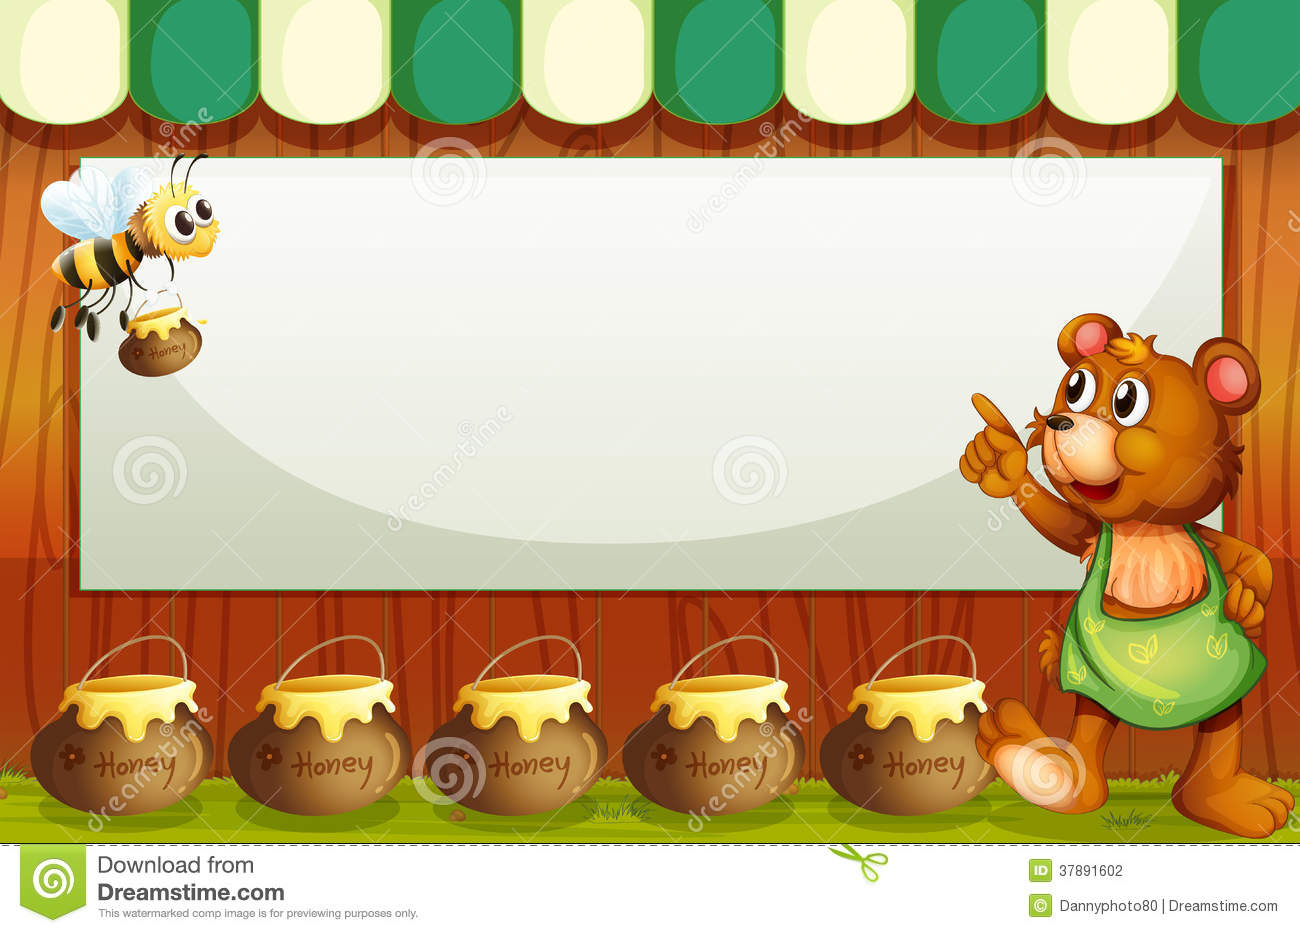 An empty rectangular template with a bee and a bear